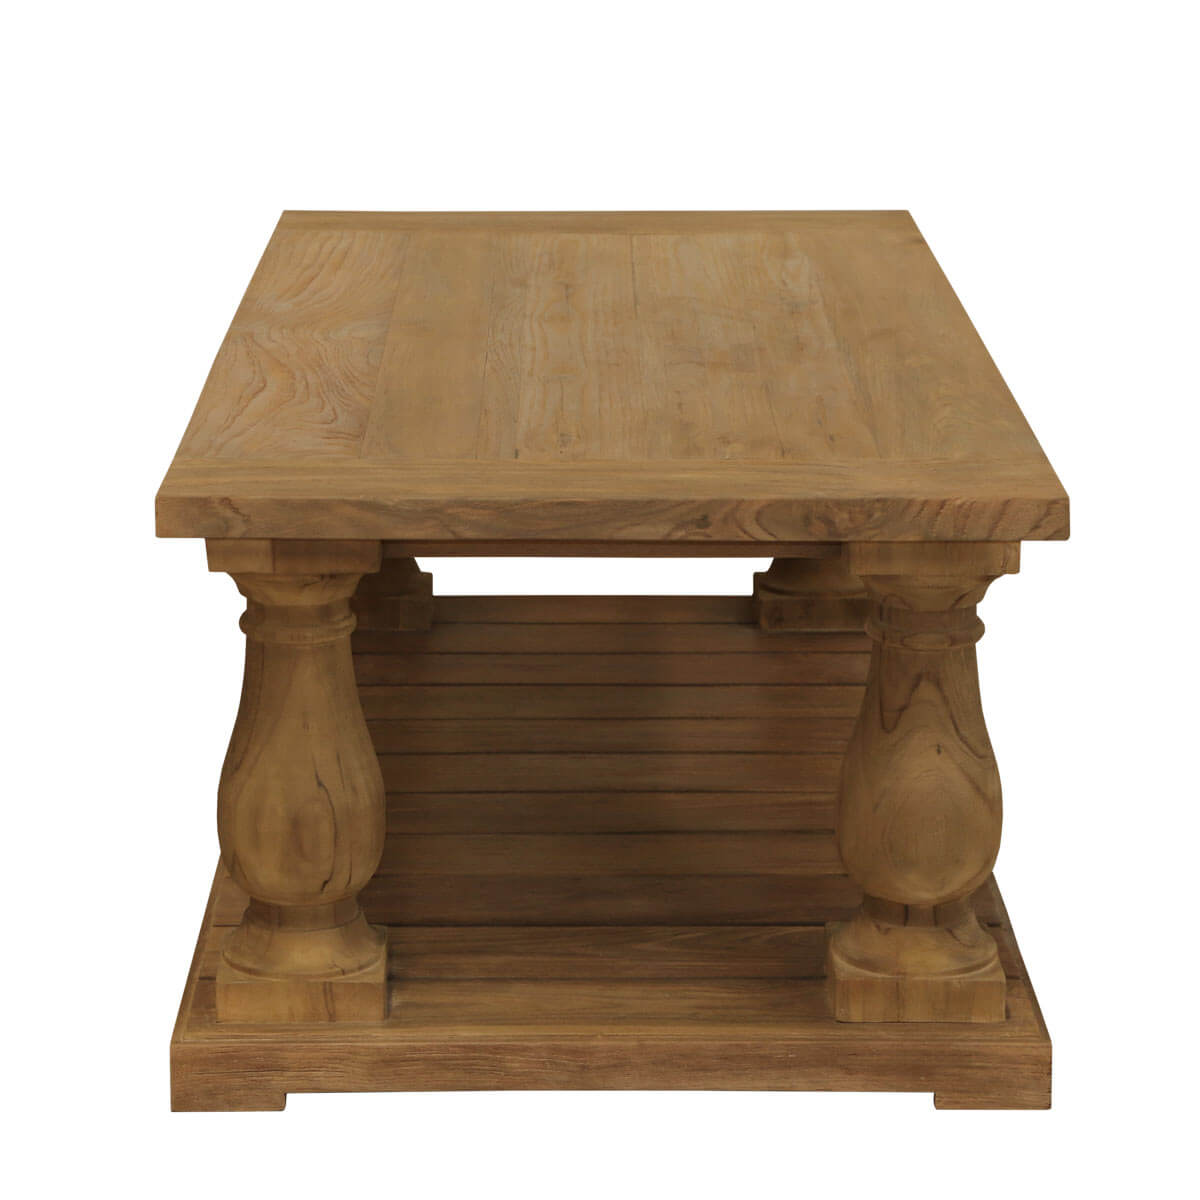 Reclaimed teak wood balustrade coffee table for Reclaimed teak wood coffee table